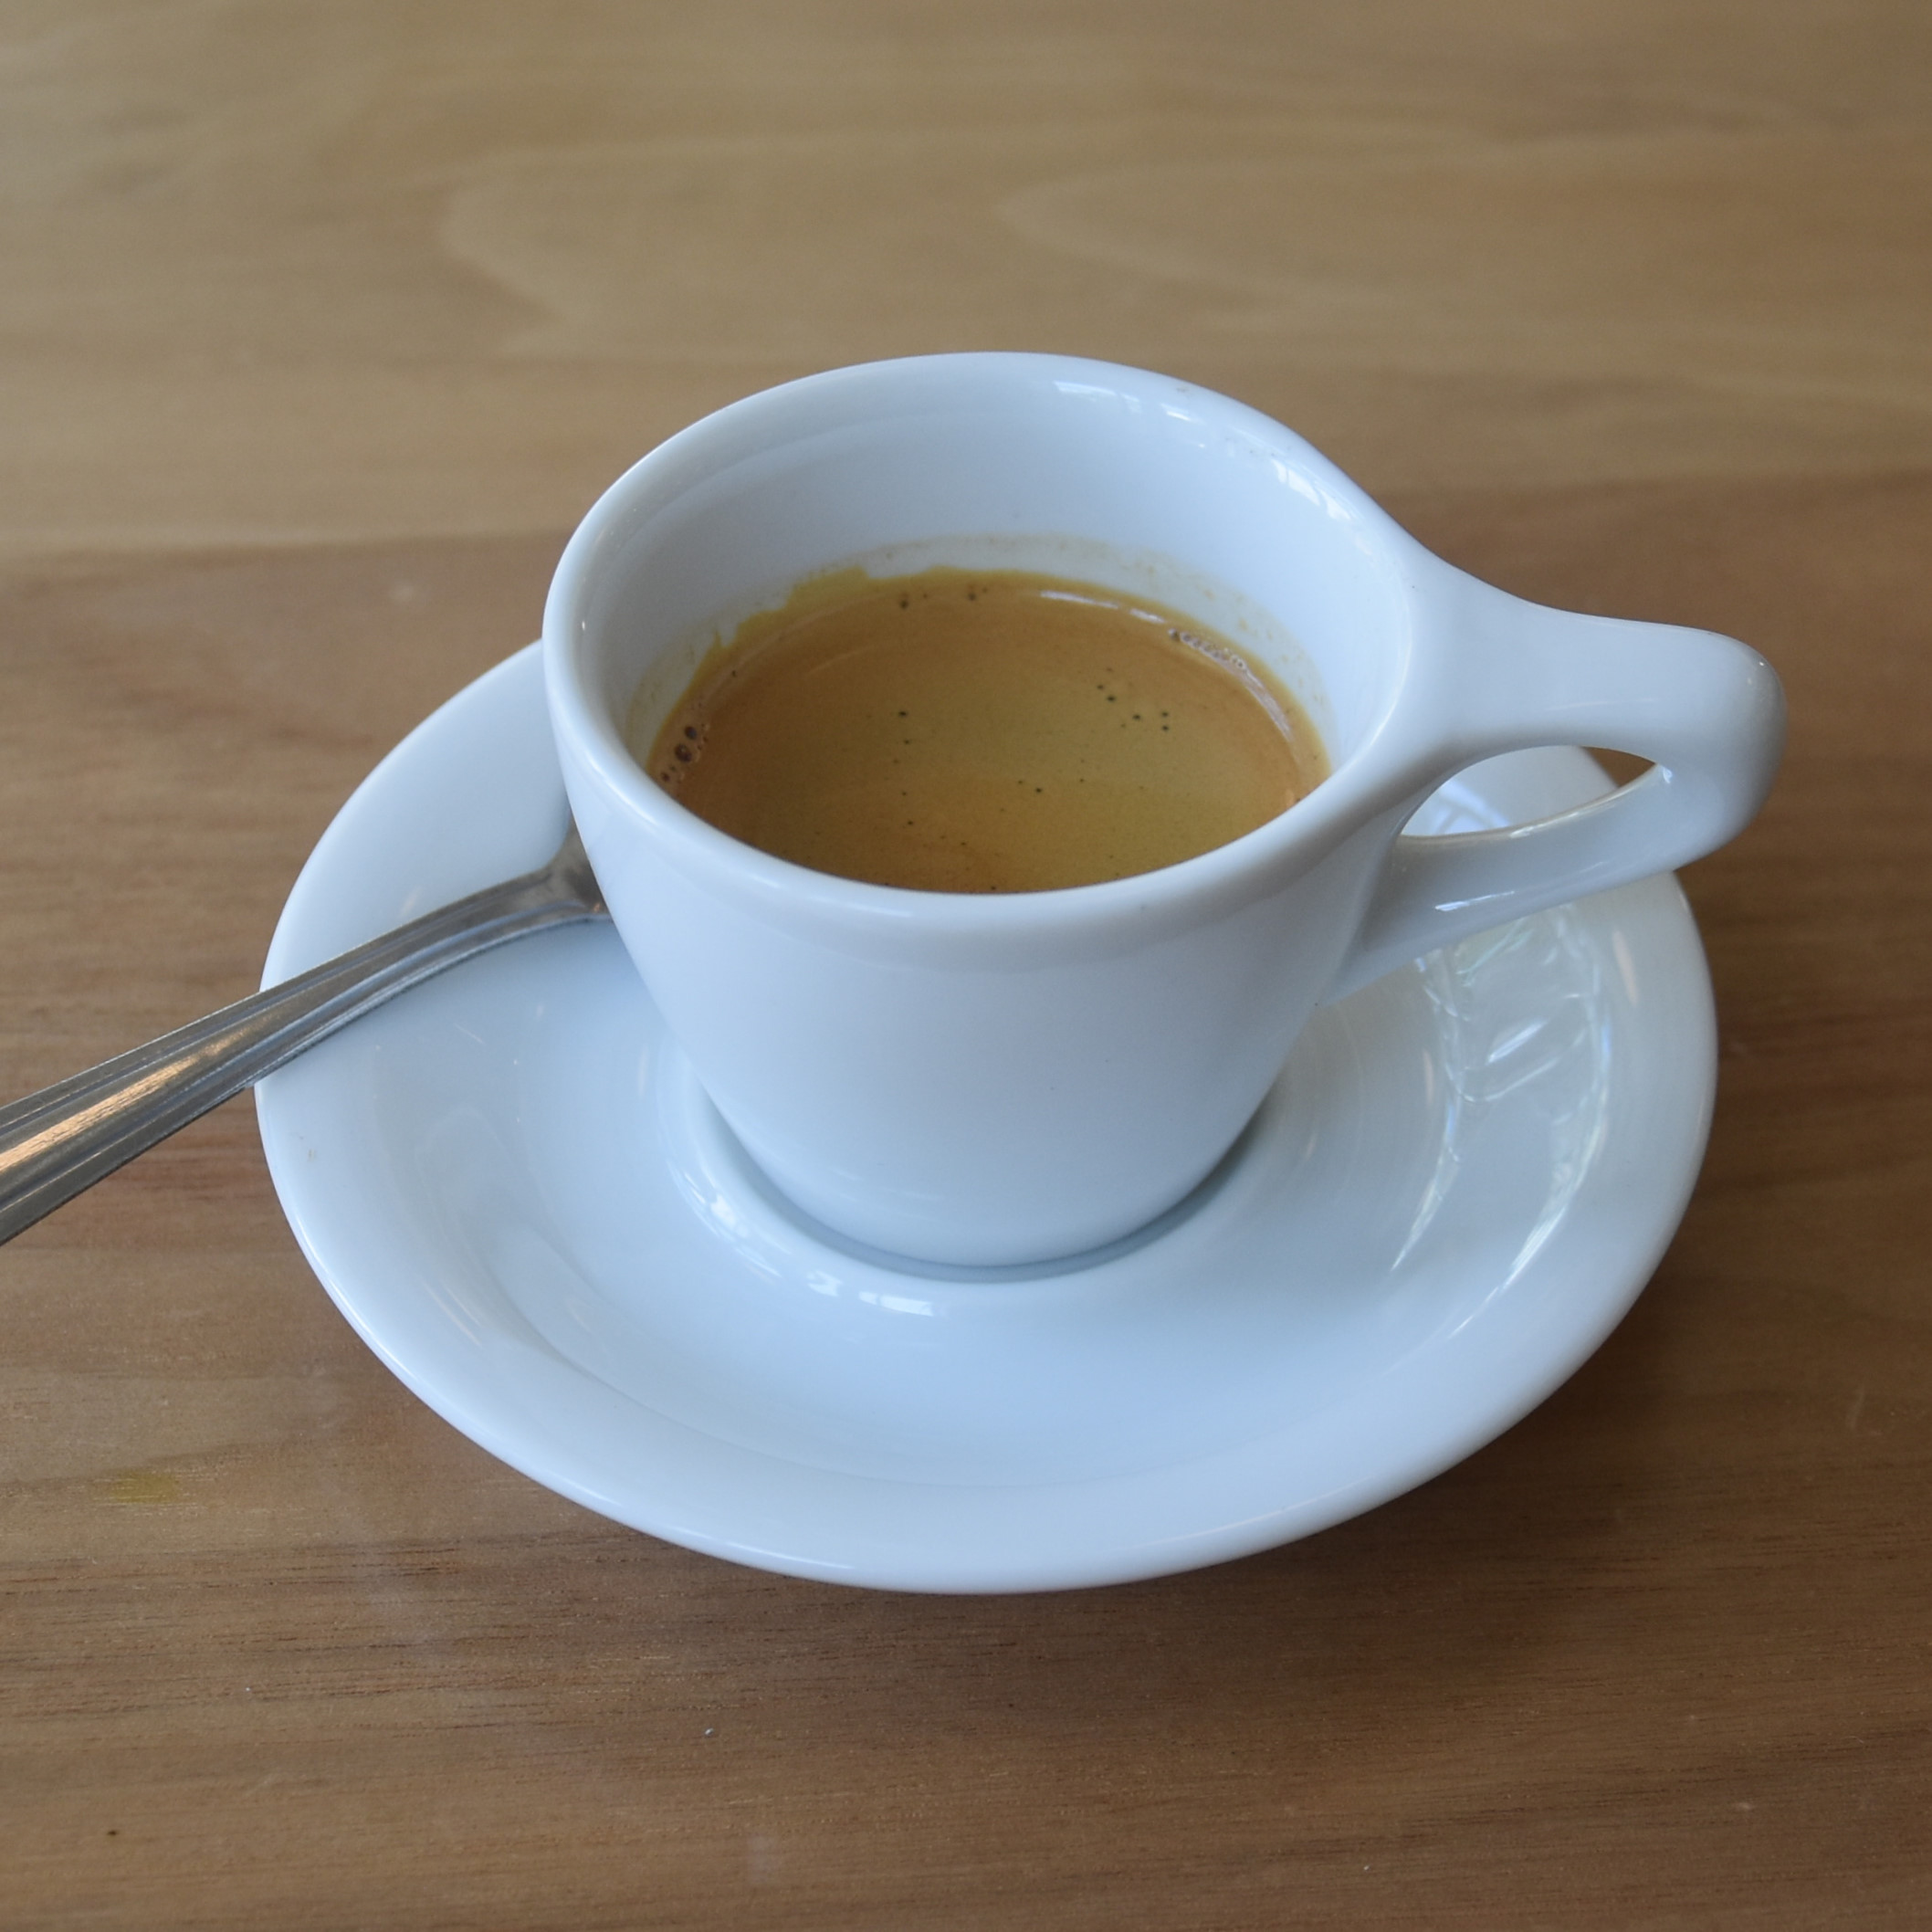 An organic Guatemalan Concepcion single-origin espresso from Kickapoo in Milwaukee, served in a classic white espresso cup with an oversized handle.